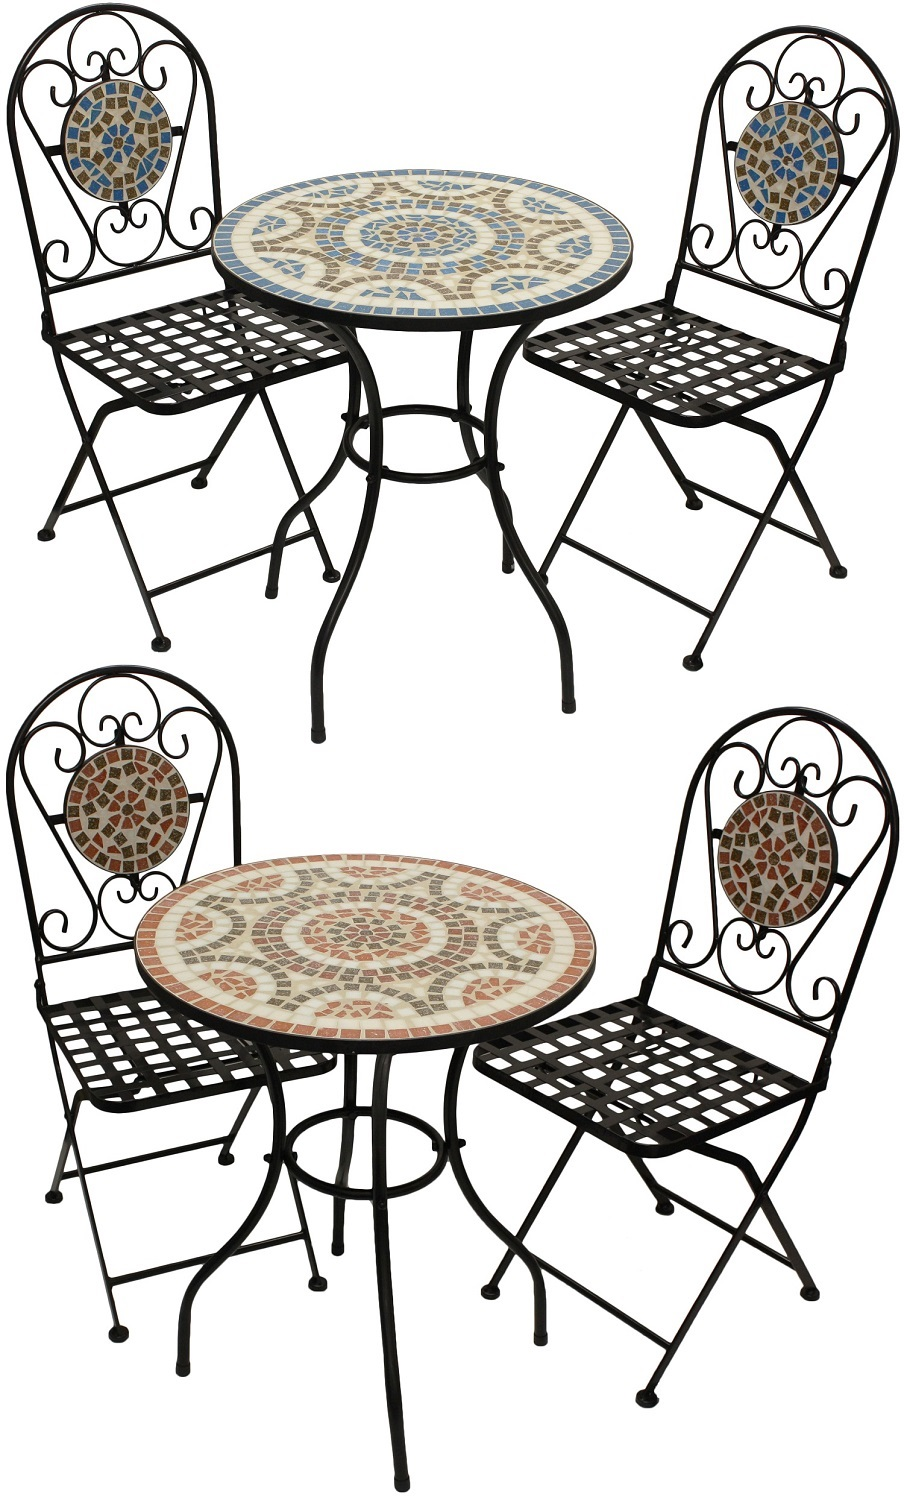 Woodside Mosaic Table And Chair Set Furniture Outdoor Value